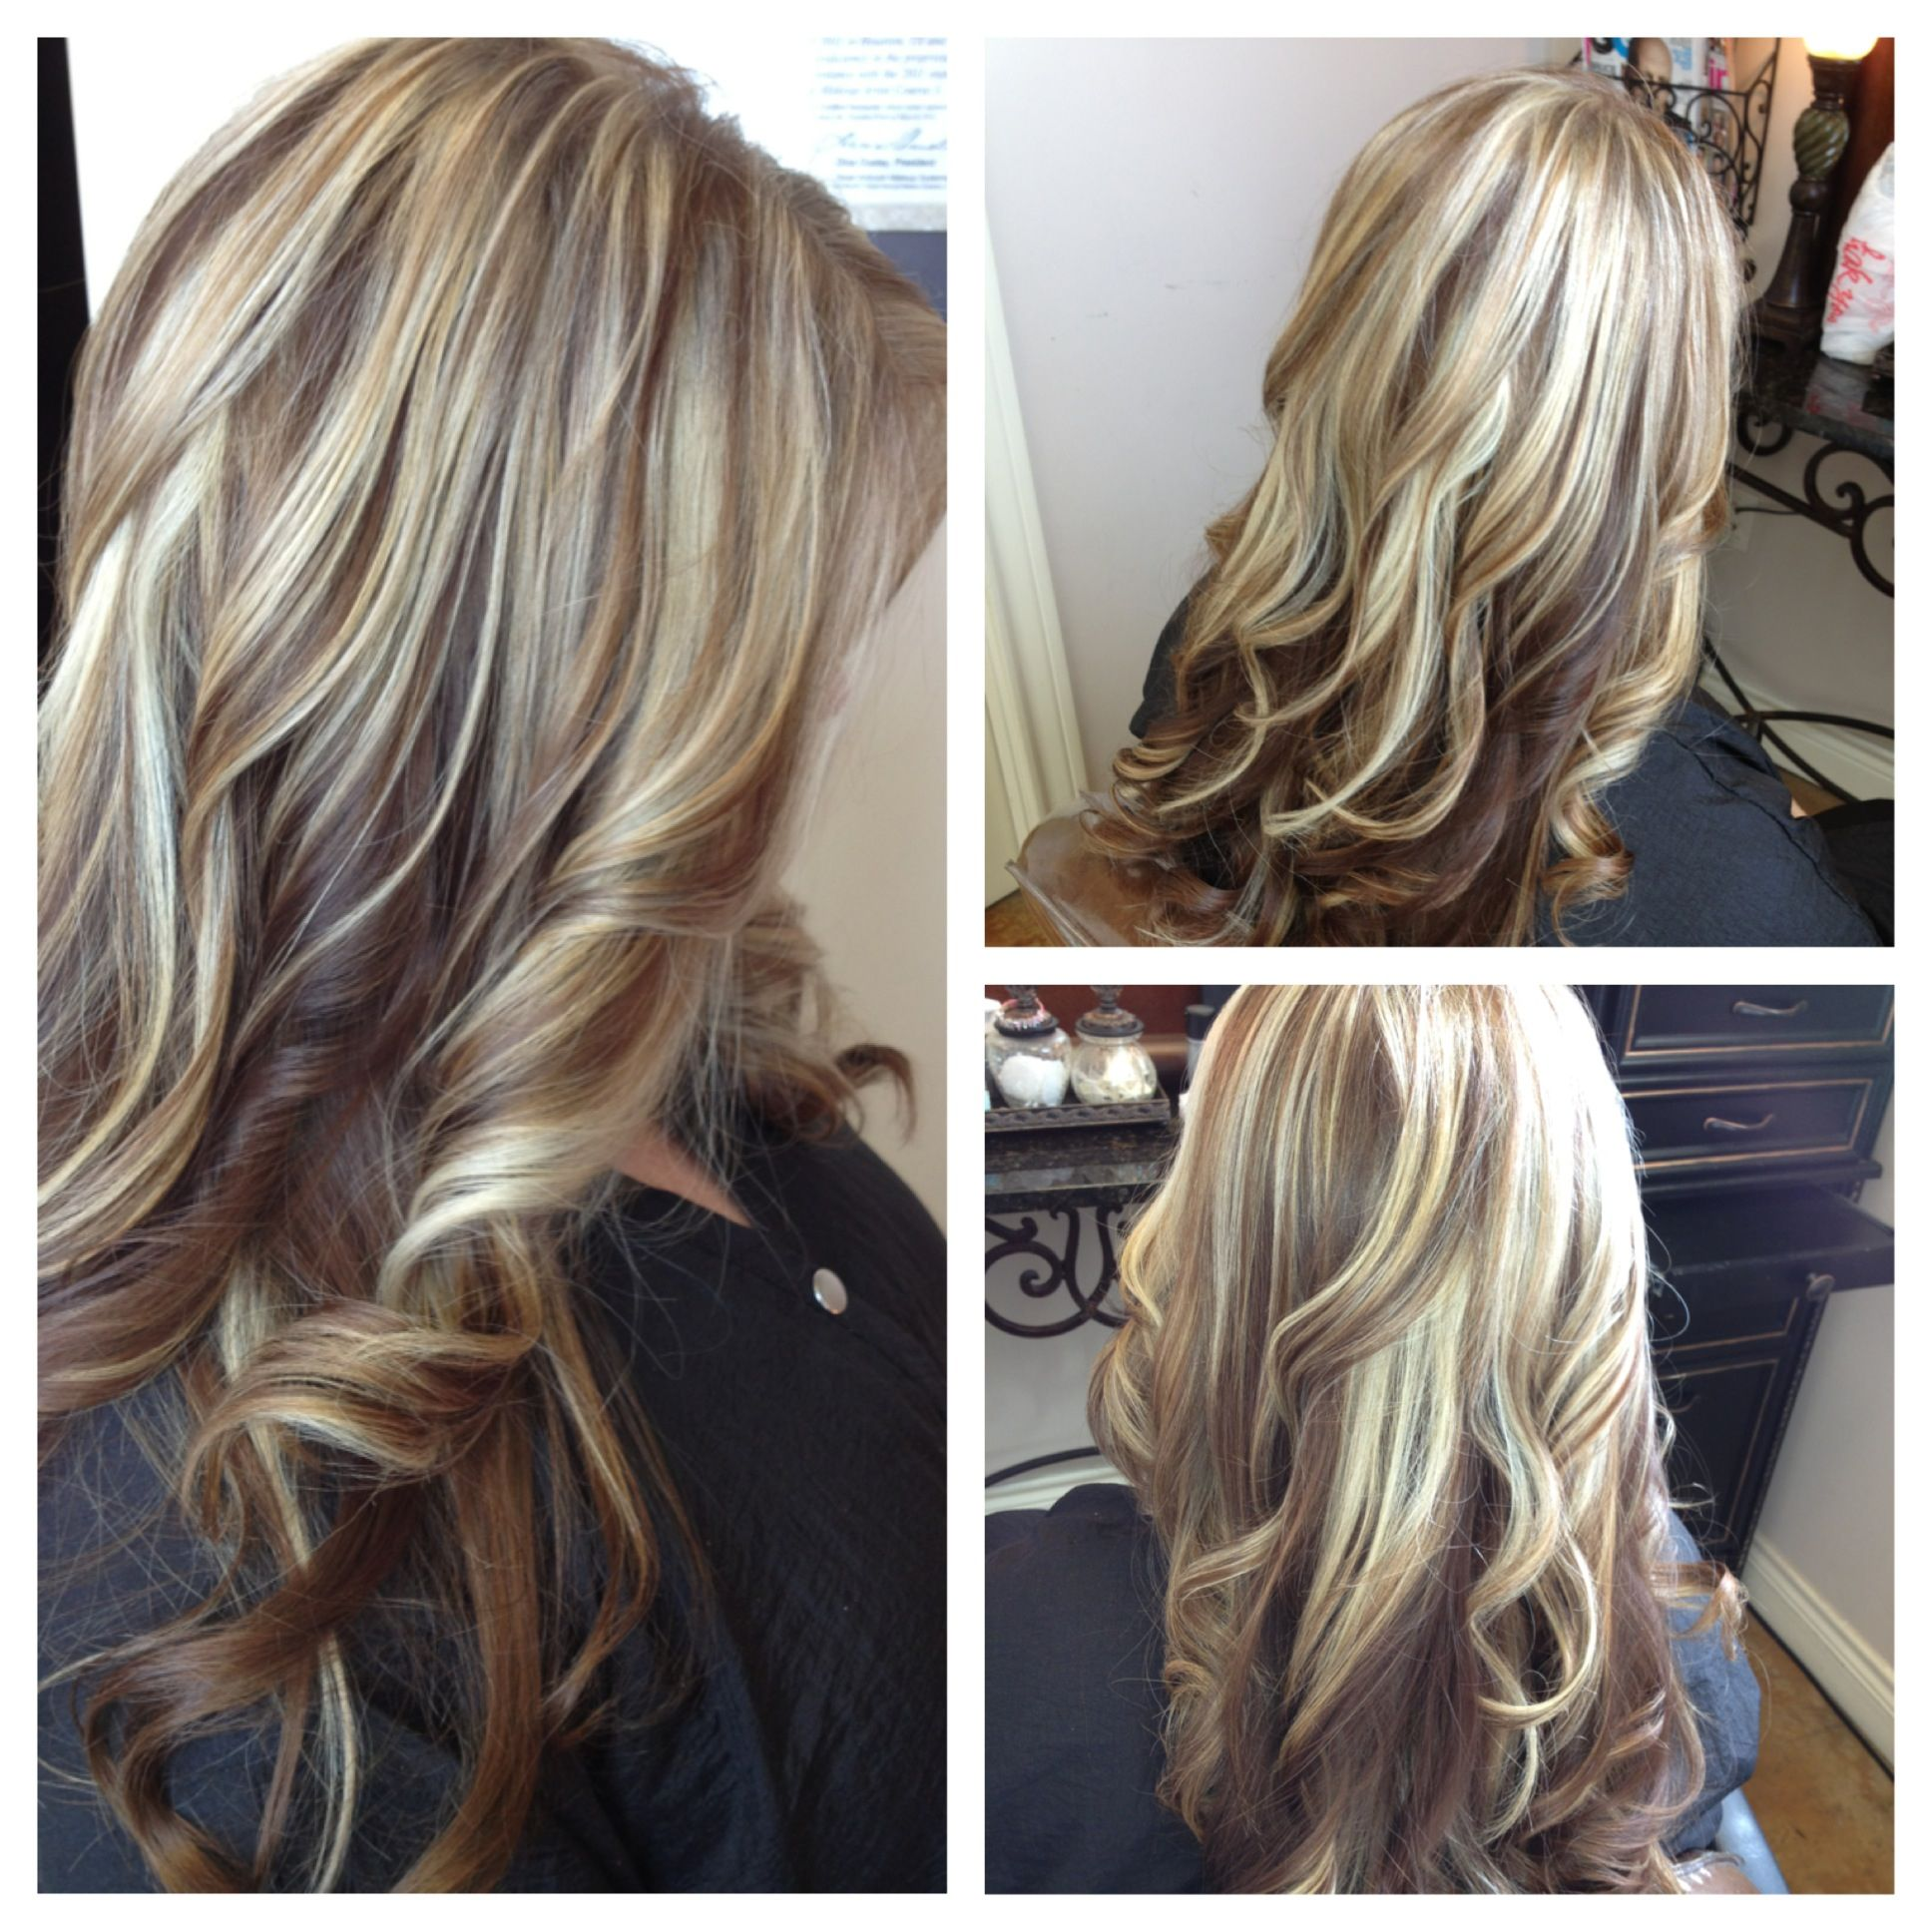 Best 25+ Blonde long layers ideas on Pinterest   Layered ...